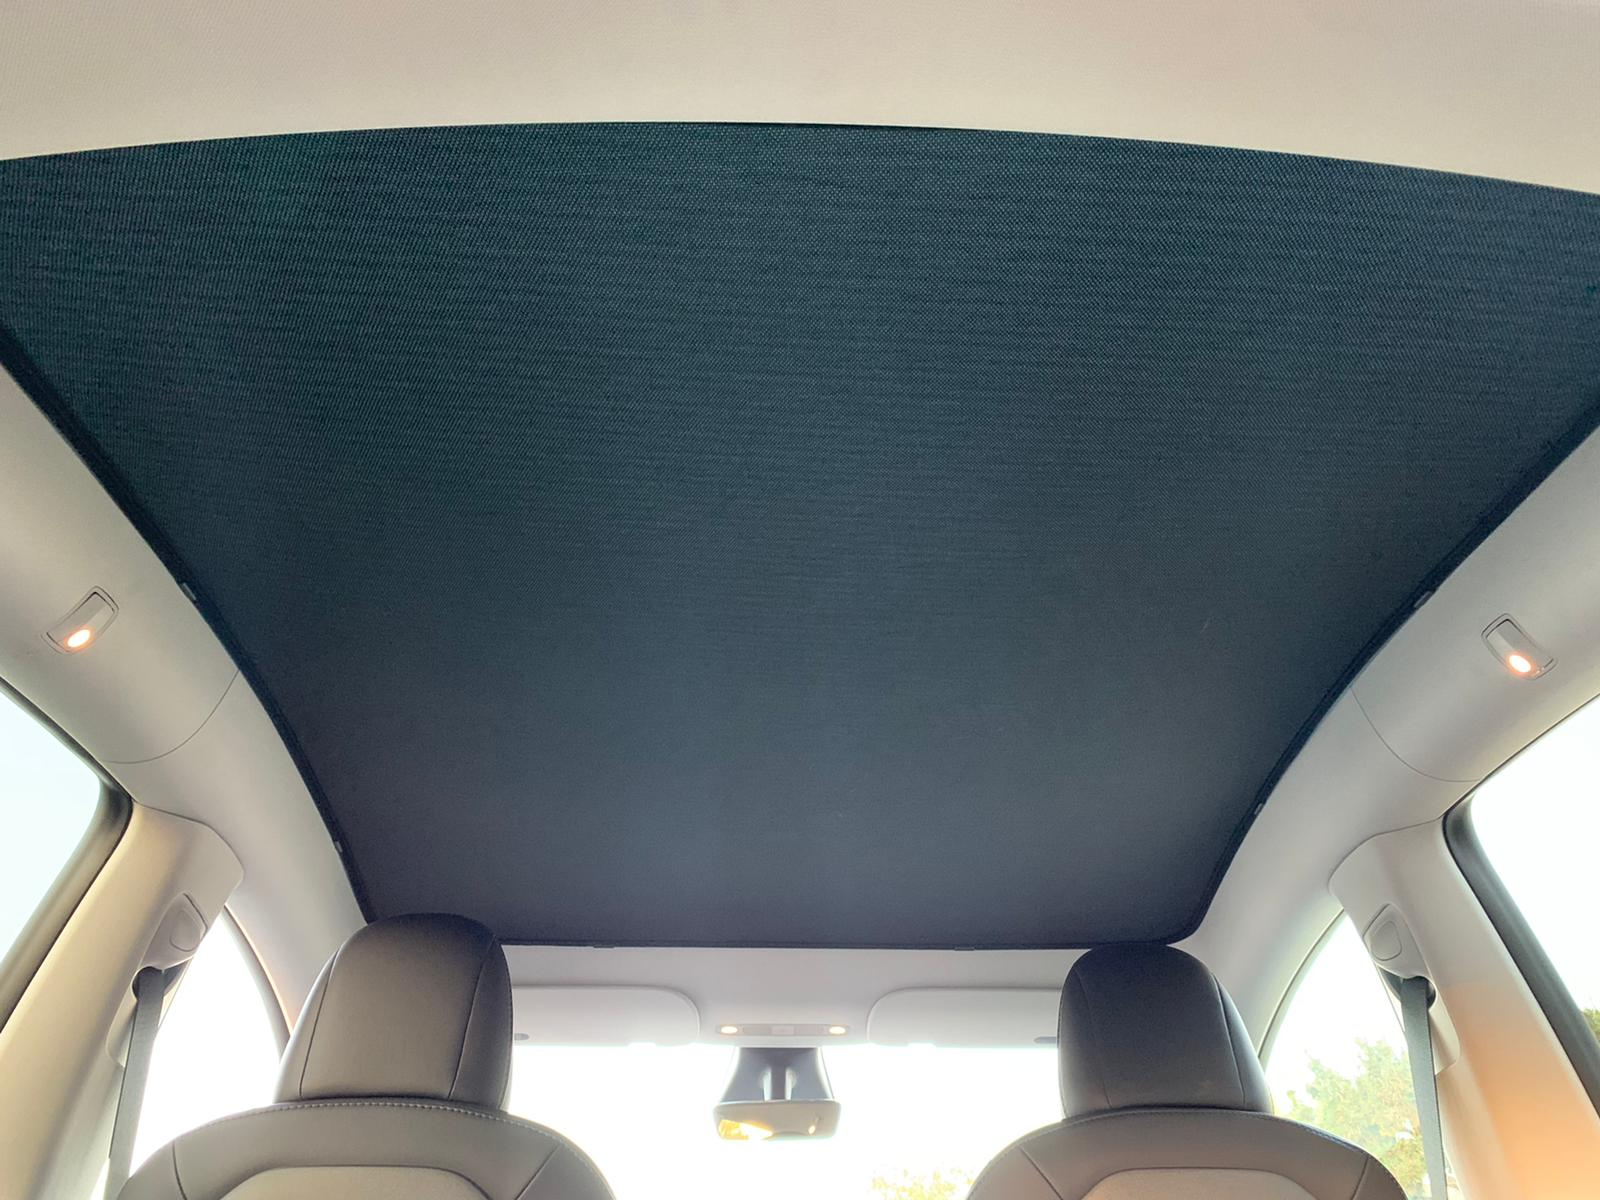 Tesla Model Y Glass Roof Sunshade - 02